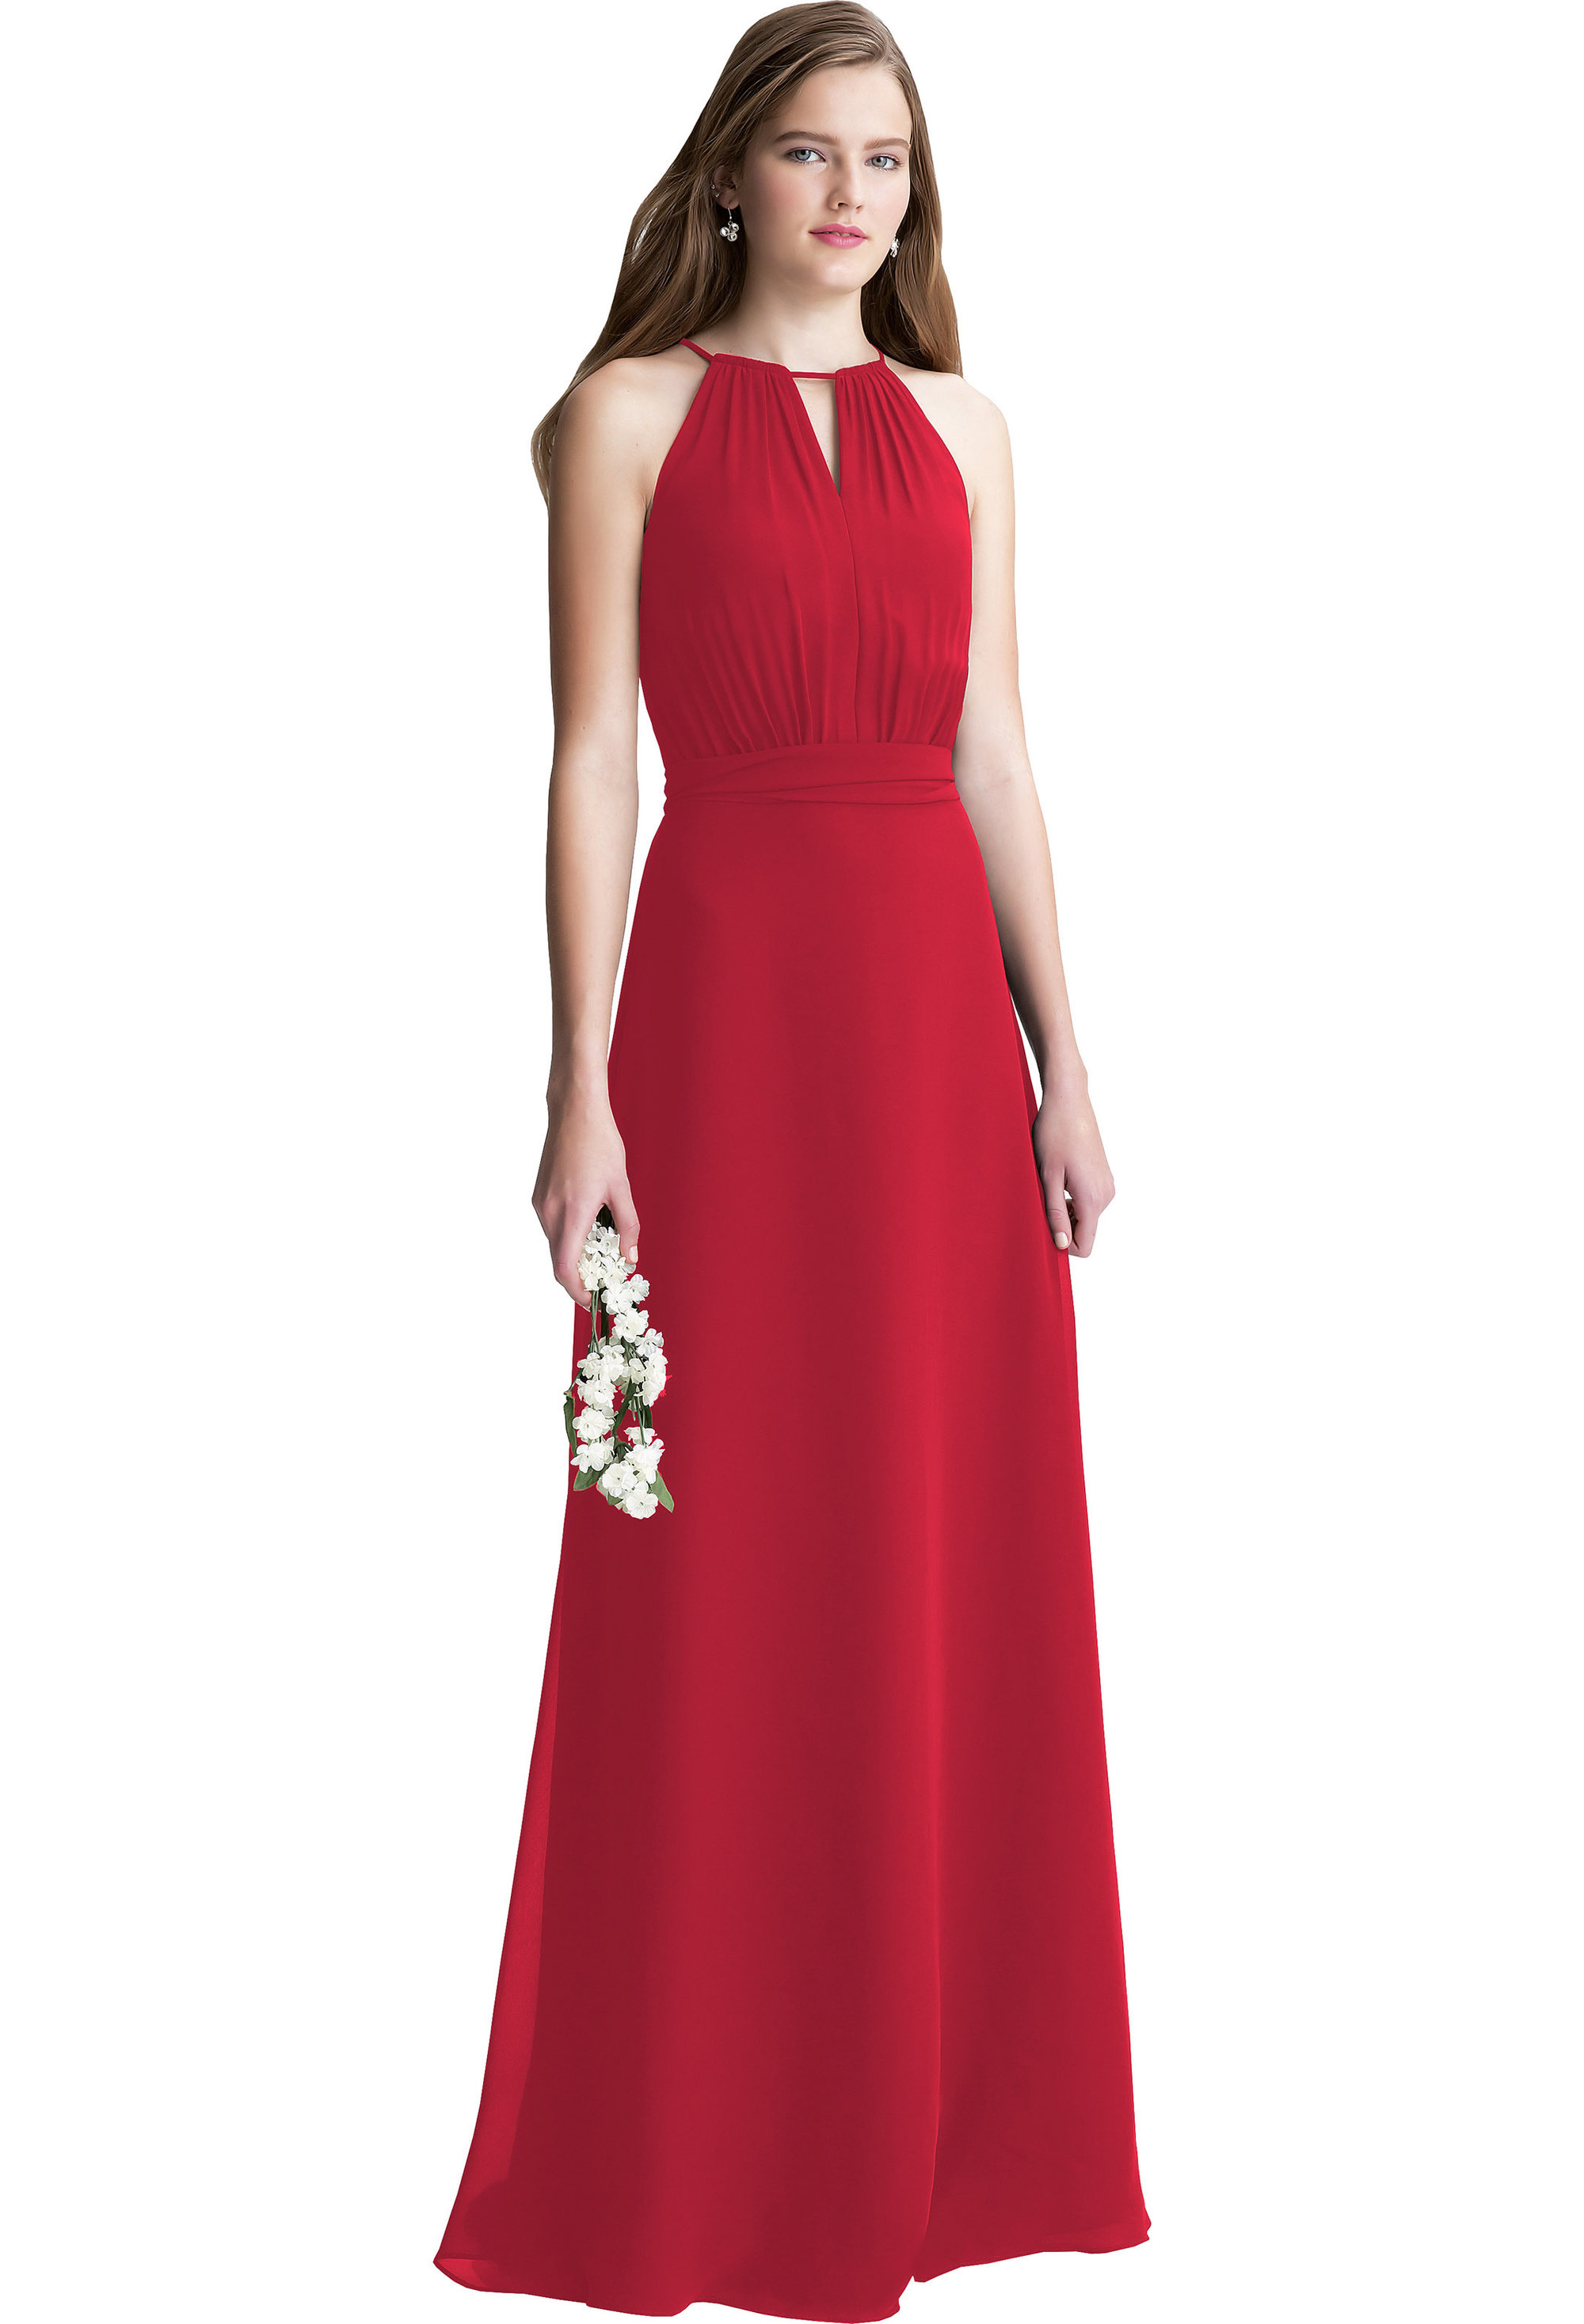 Bill Levkoff CHERRY Chiffon Keyhole A-line gown, $200.00 Front